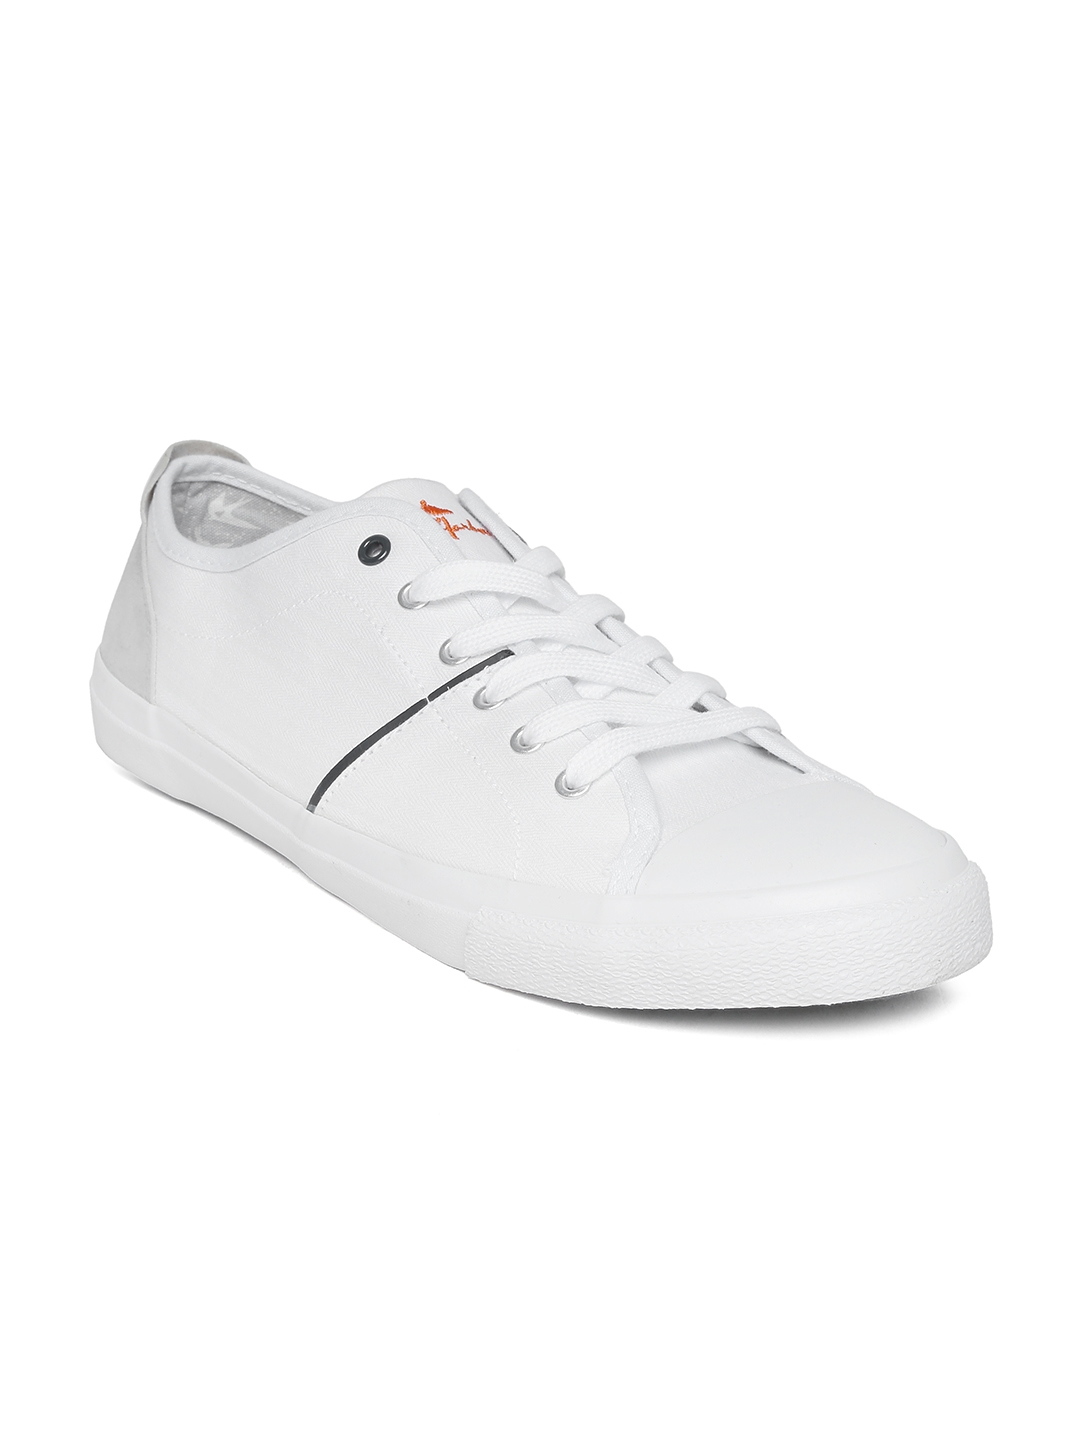 white canvas shoes mens shoes for yourstyles